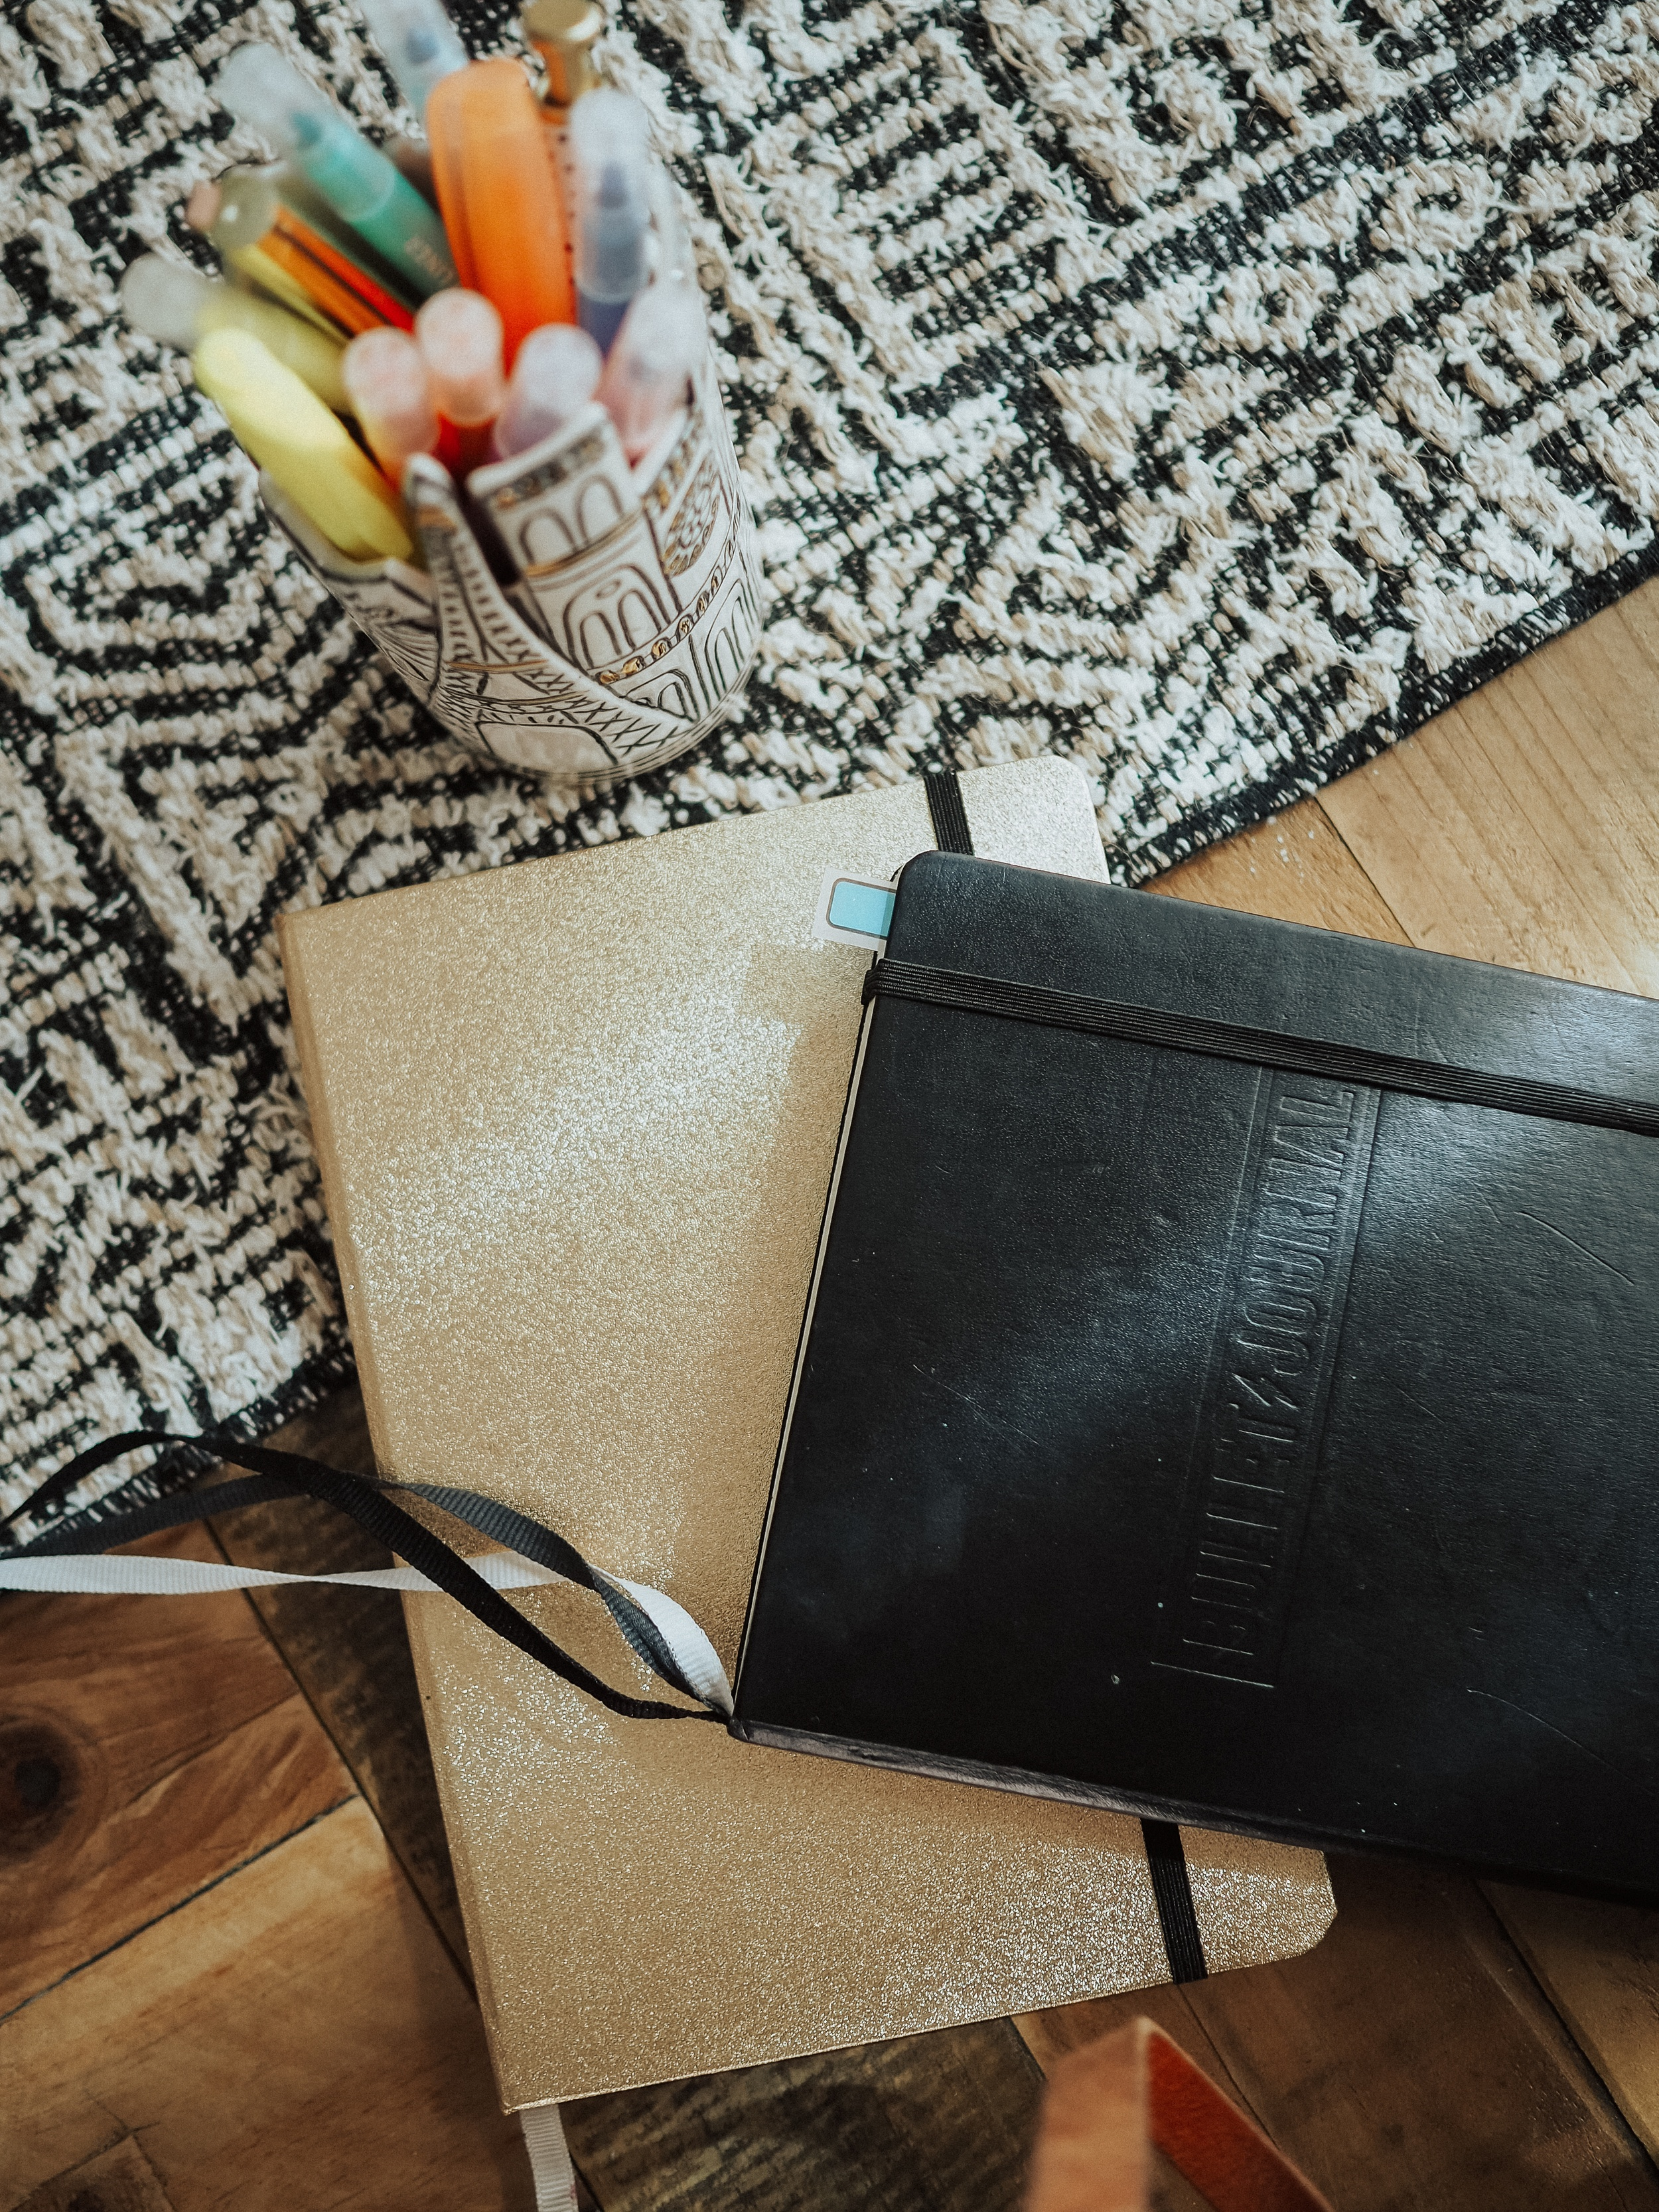 Create the bullet journal of your dreams with this list of 100+ bullet journal ideas. Find creative bullet journal inspo in this post.